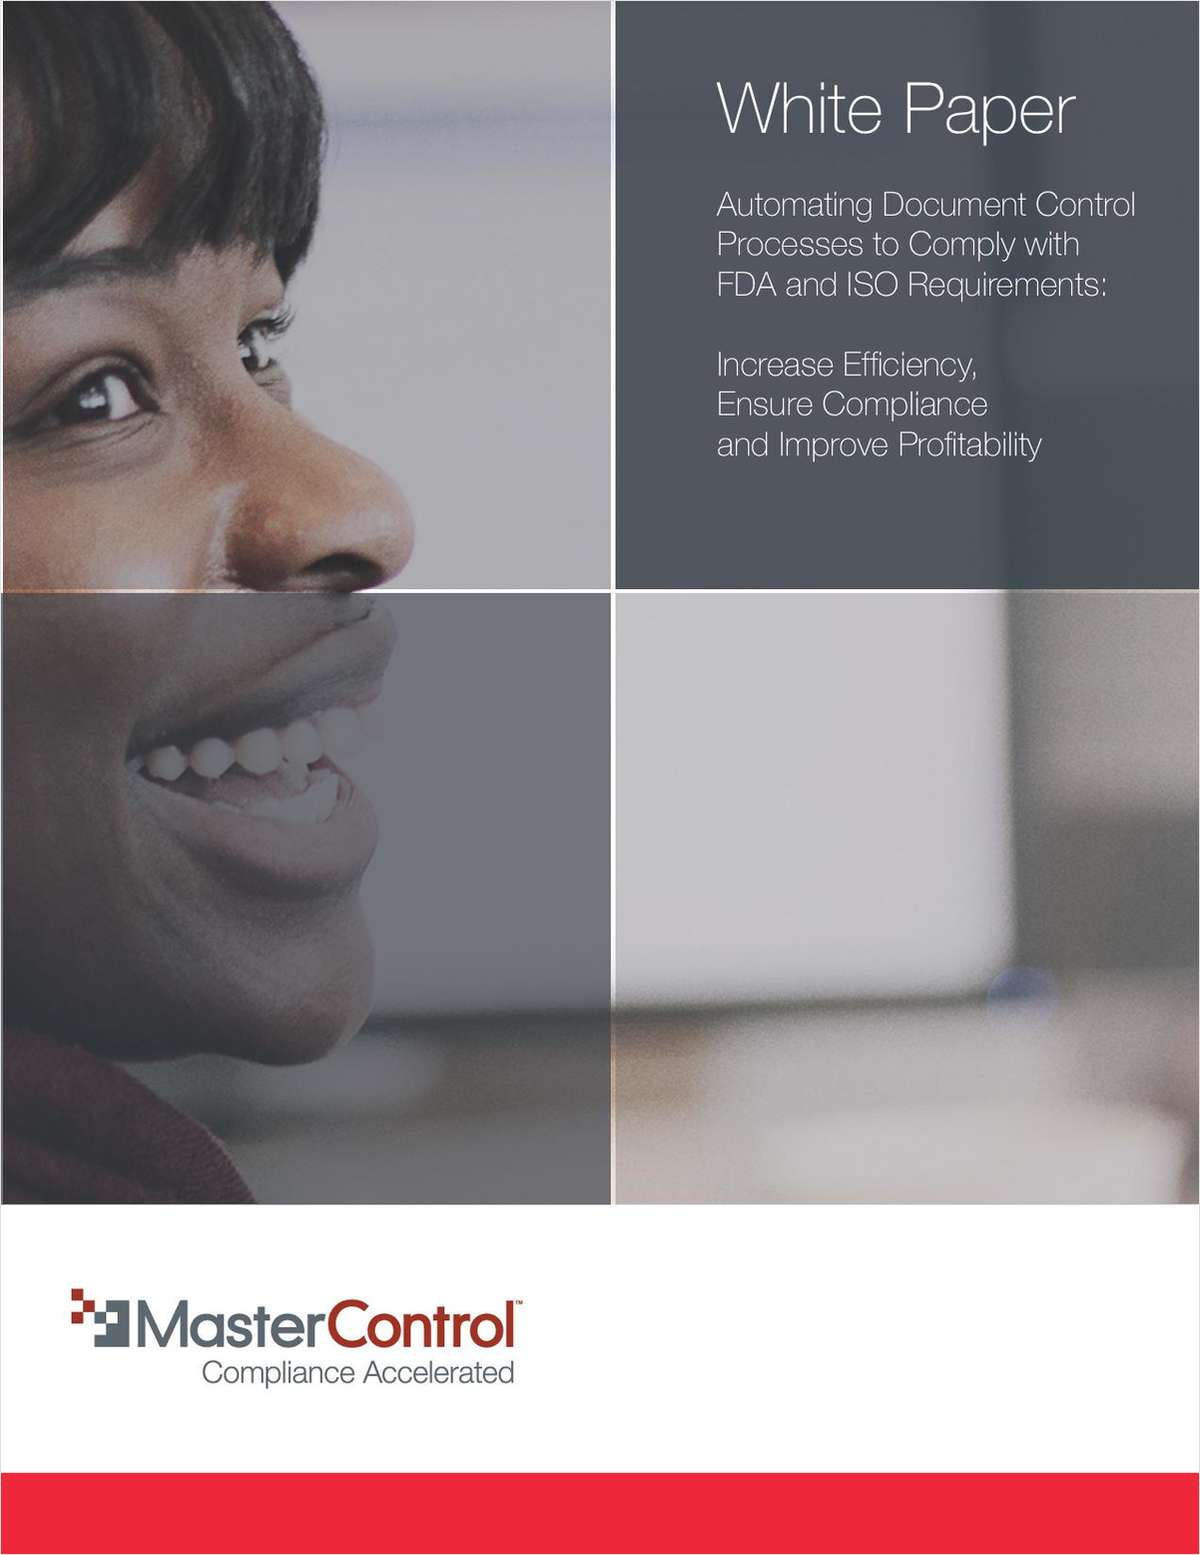 Automating Document Control Processes to Comply with FDA and ISO Requirements: Increase Efficiency, Ensure Compliance and Improve Profitability